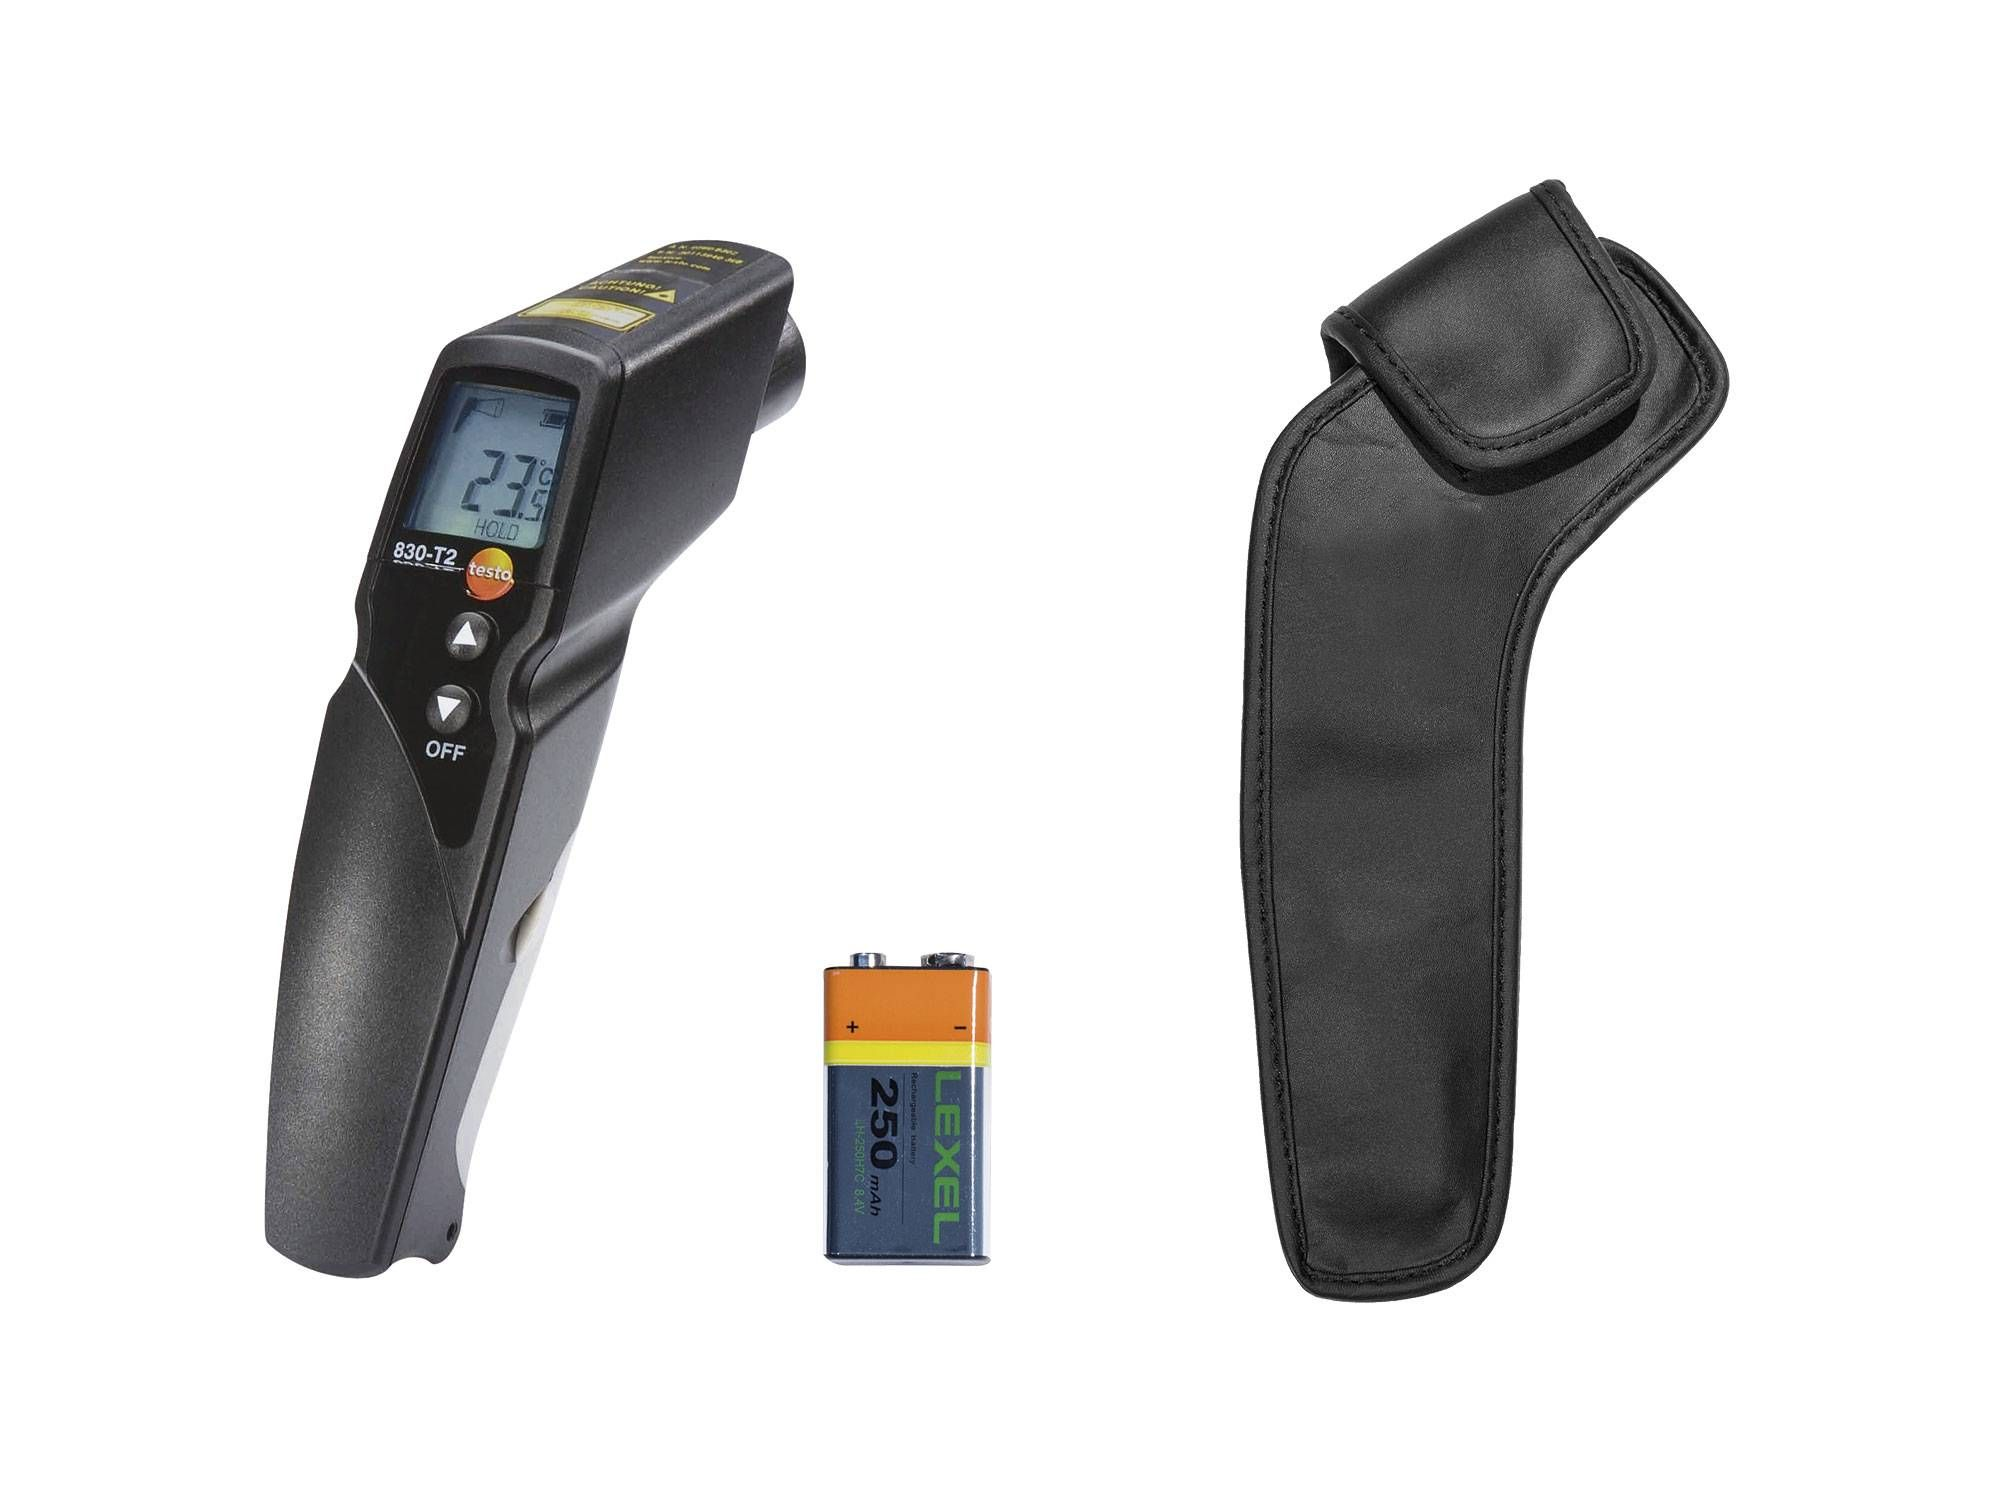 Infrared thermometer testo 830-T2 kit - delivery scope